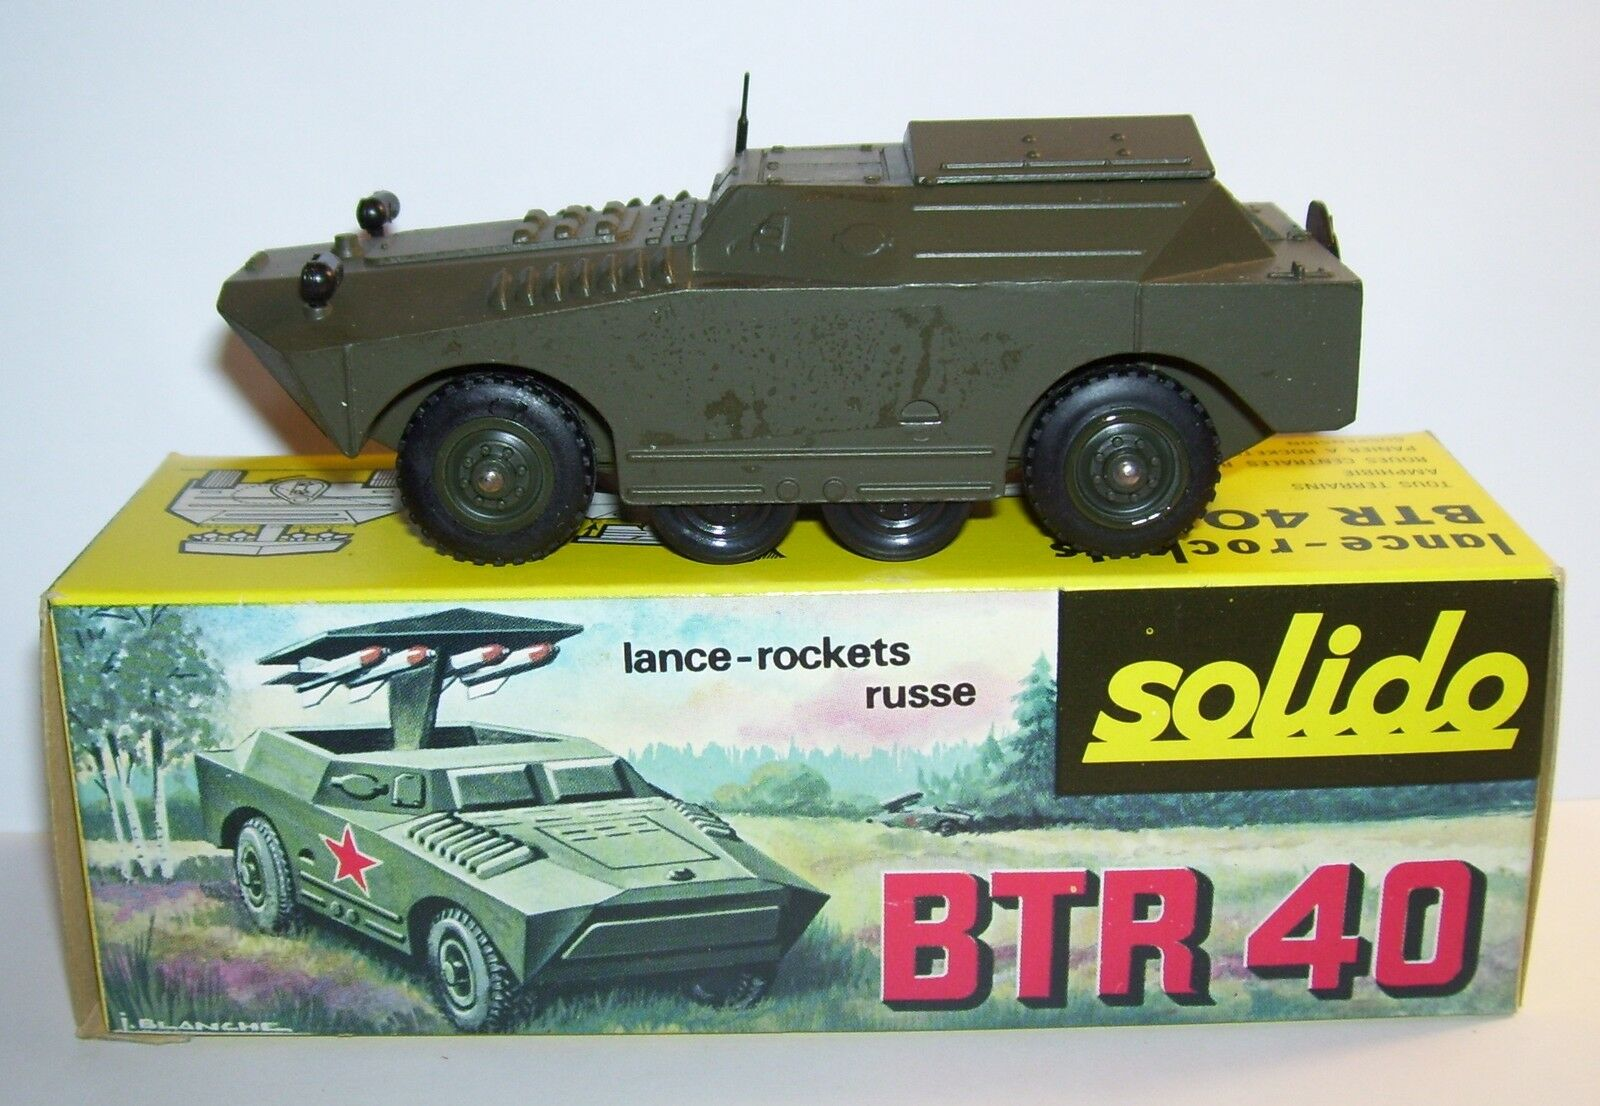 SOLIDO MILITARY CHAR TANK BTR 40 LANCE-ROCKETS LANCE-ROCKETS LANCE-ROCKETS RUSSE URSS REF 225 IN BOX e | Exquis Art